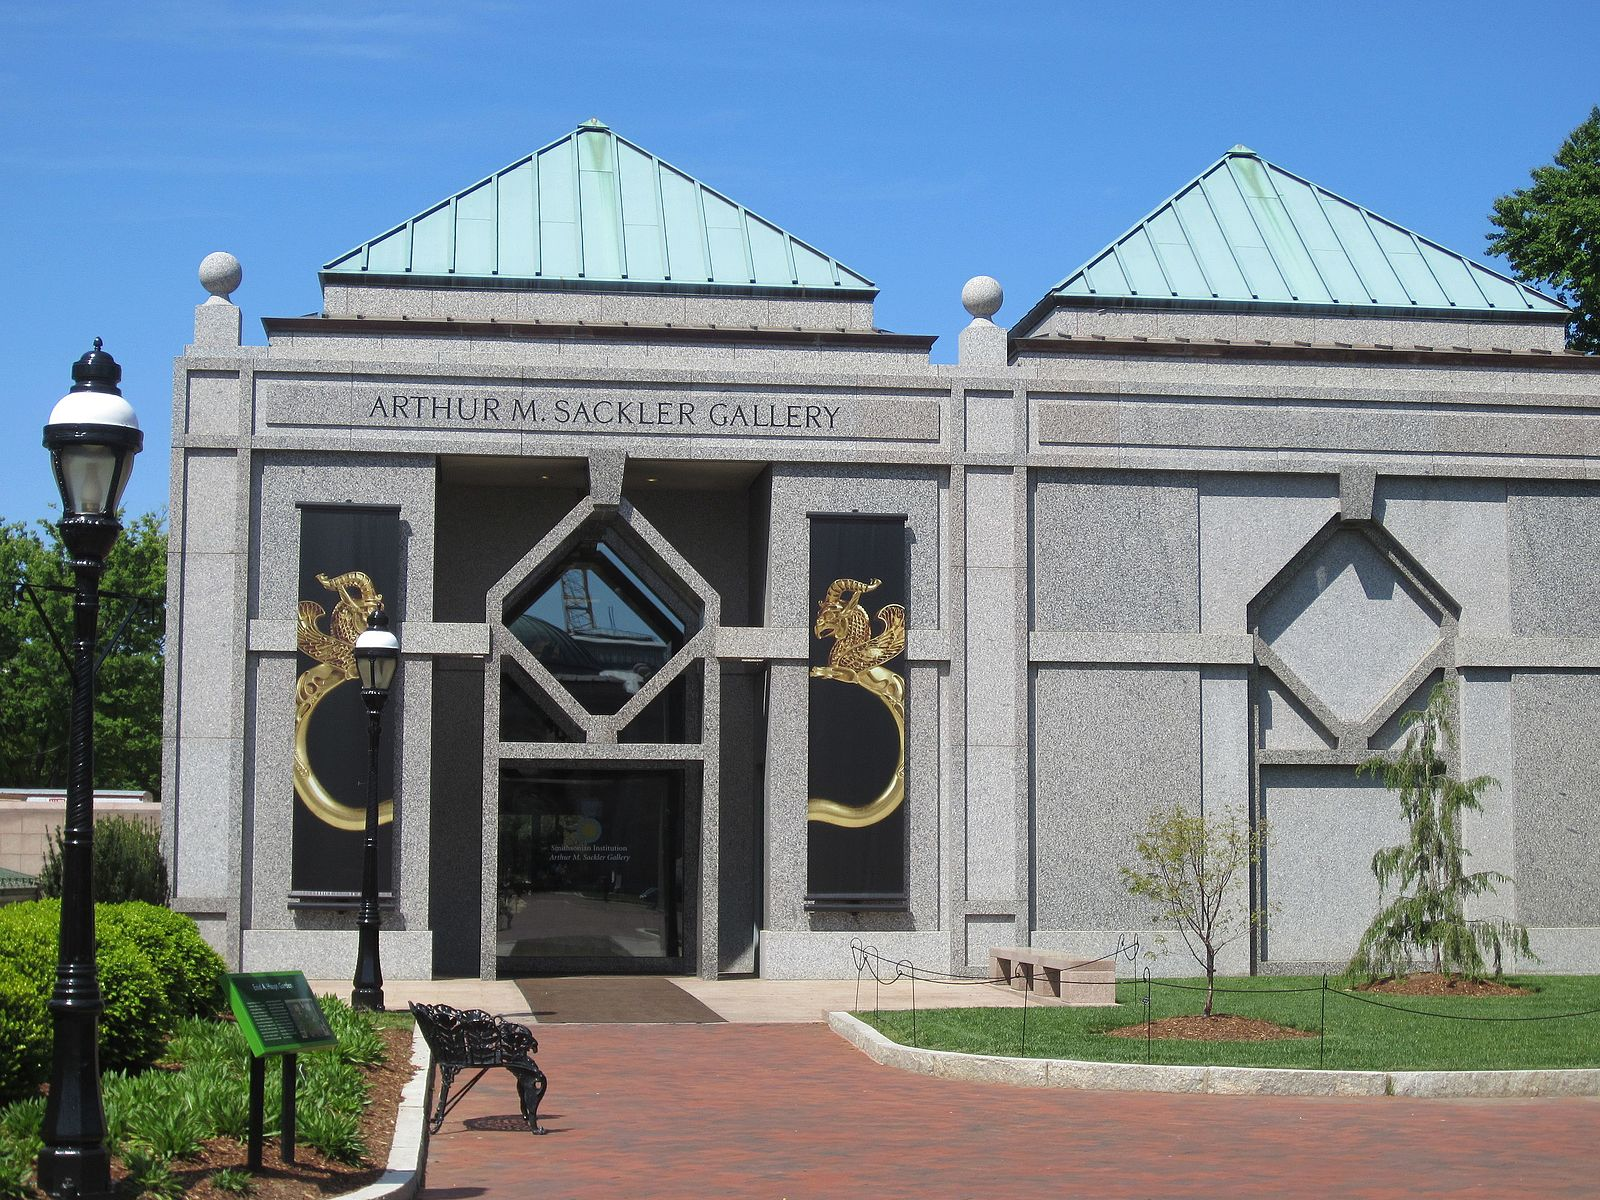 The Sackler Gallery's architecture reflects geometric patterns often found in Islamic art. Courtesy of Wikimedia Commons.